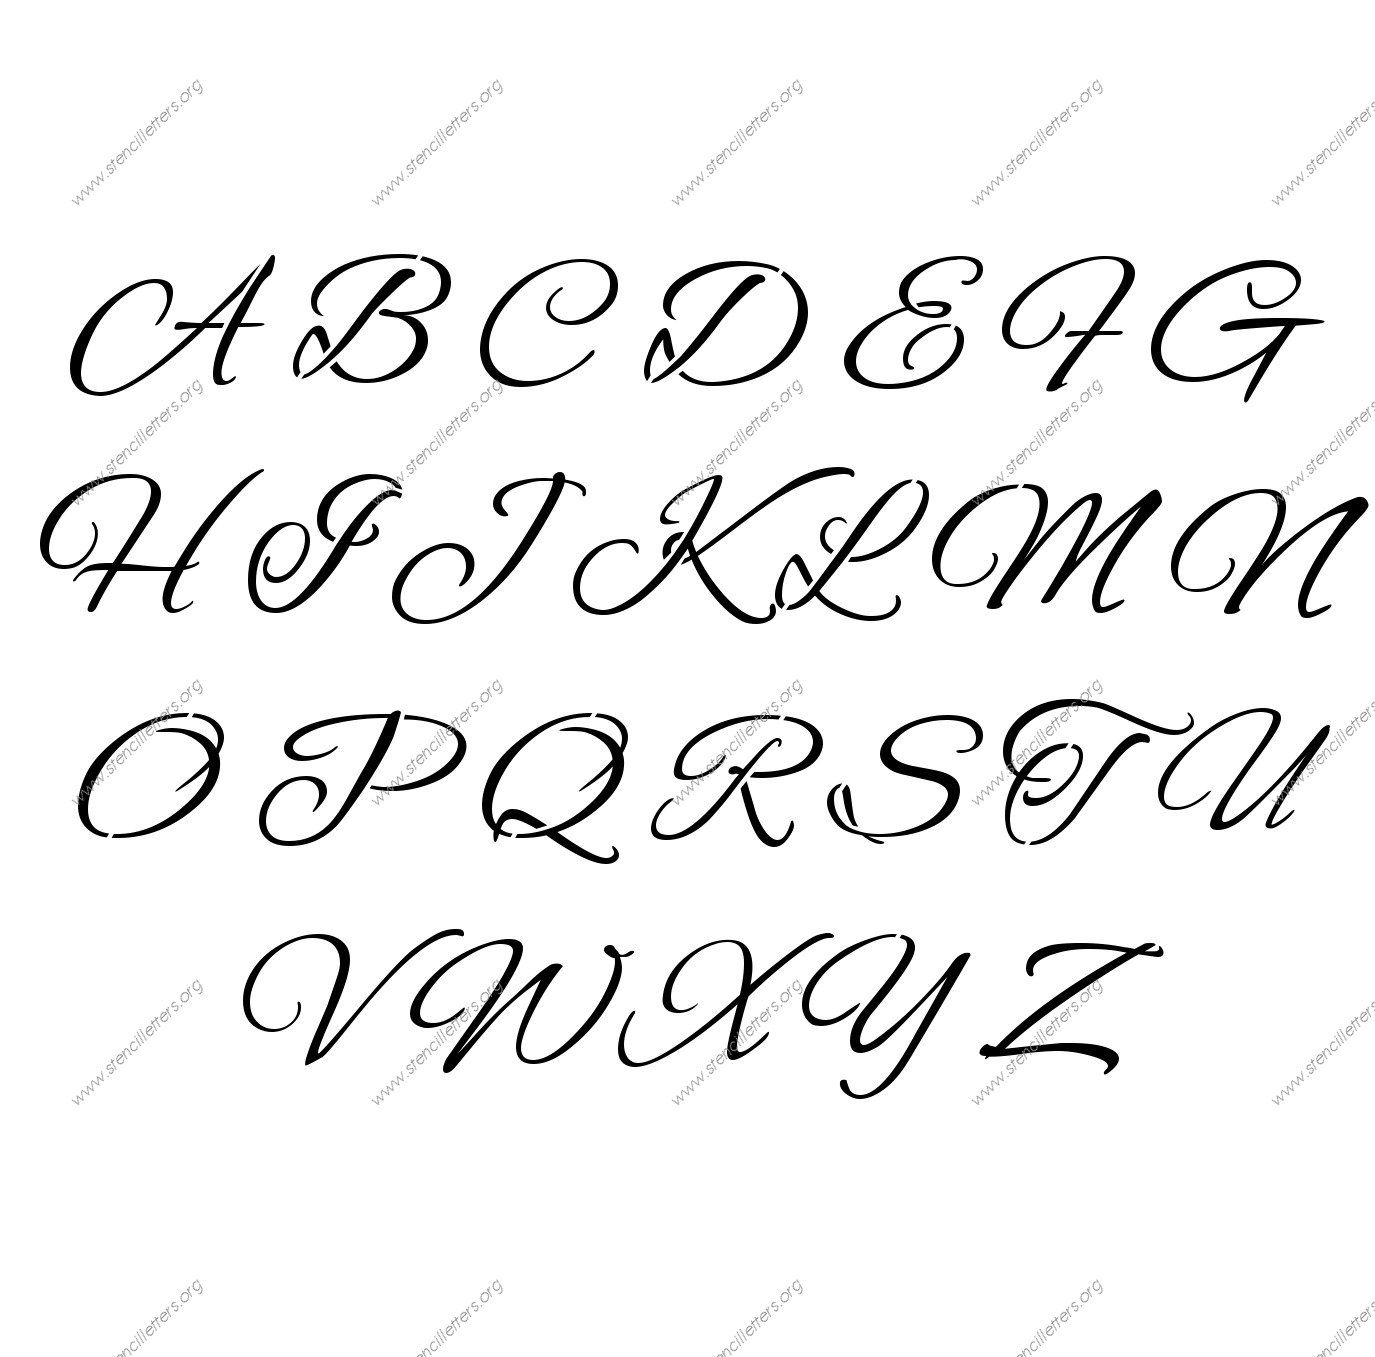 Capital A To Z In Cursive Writing